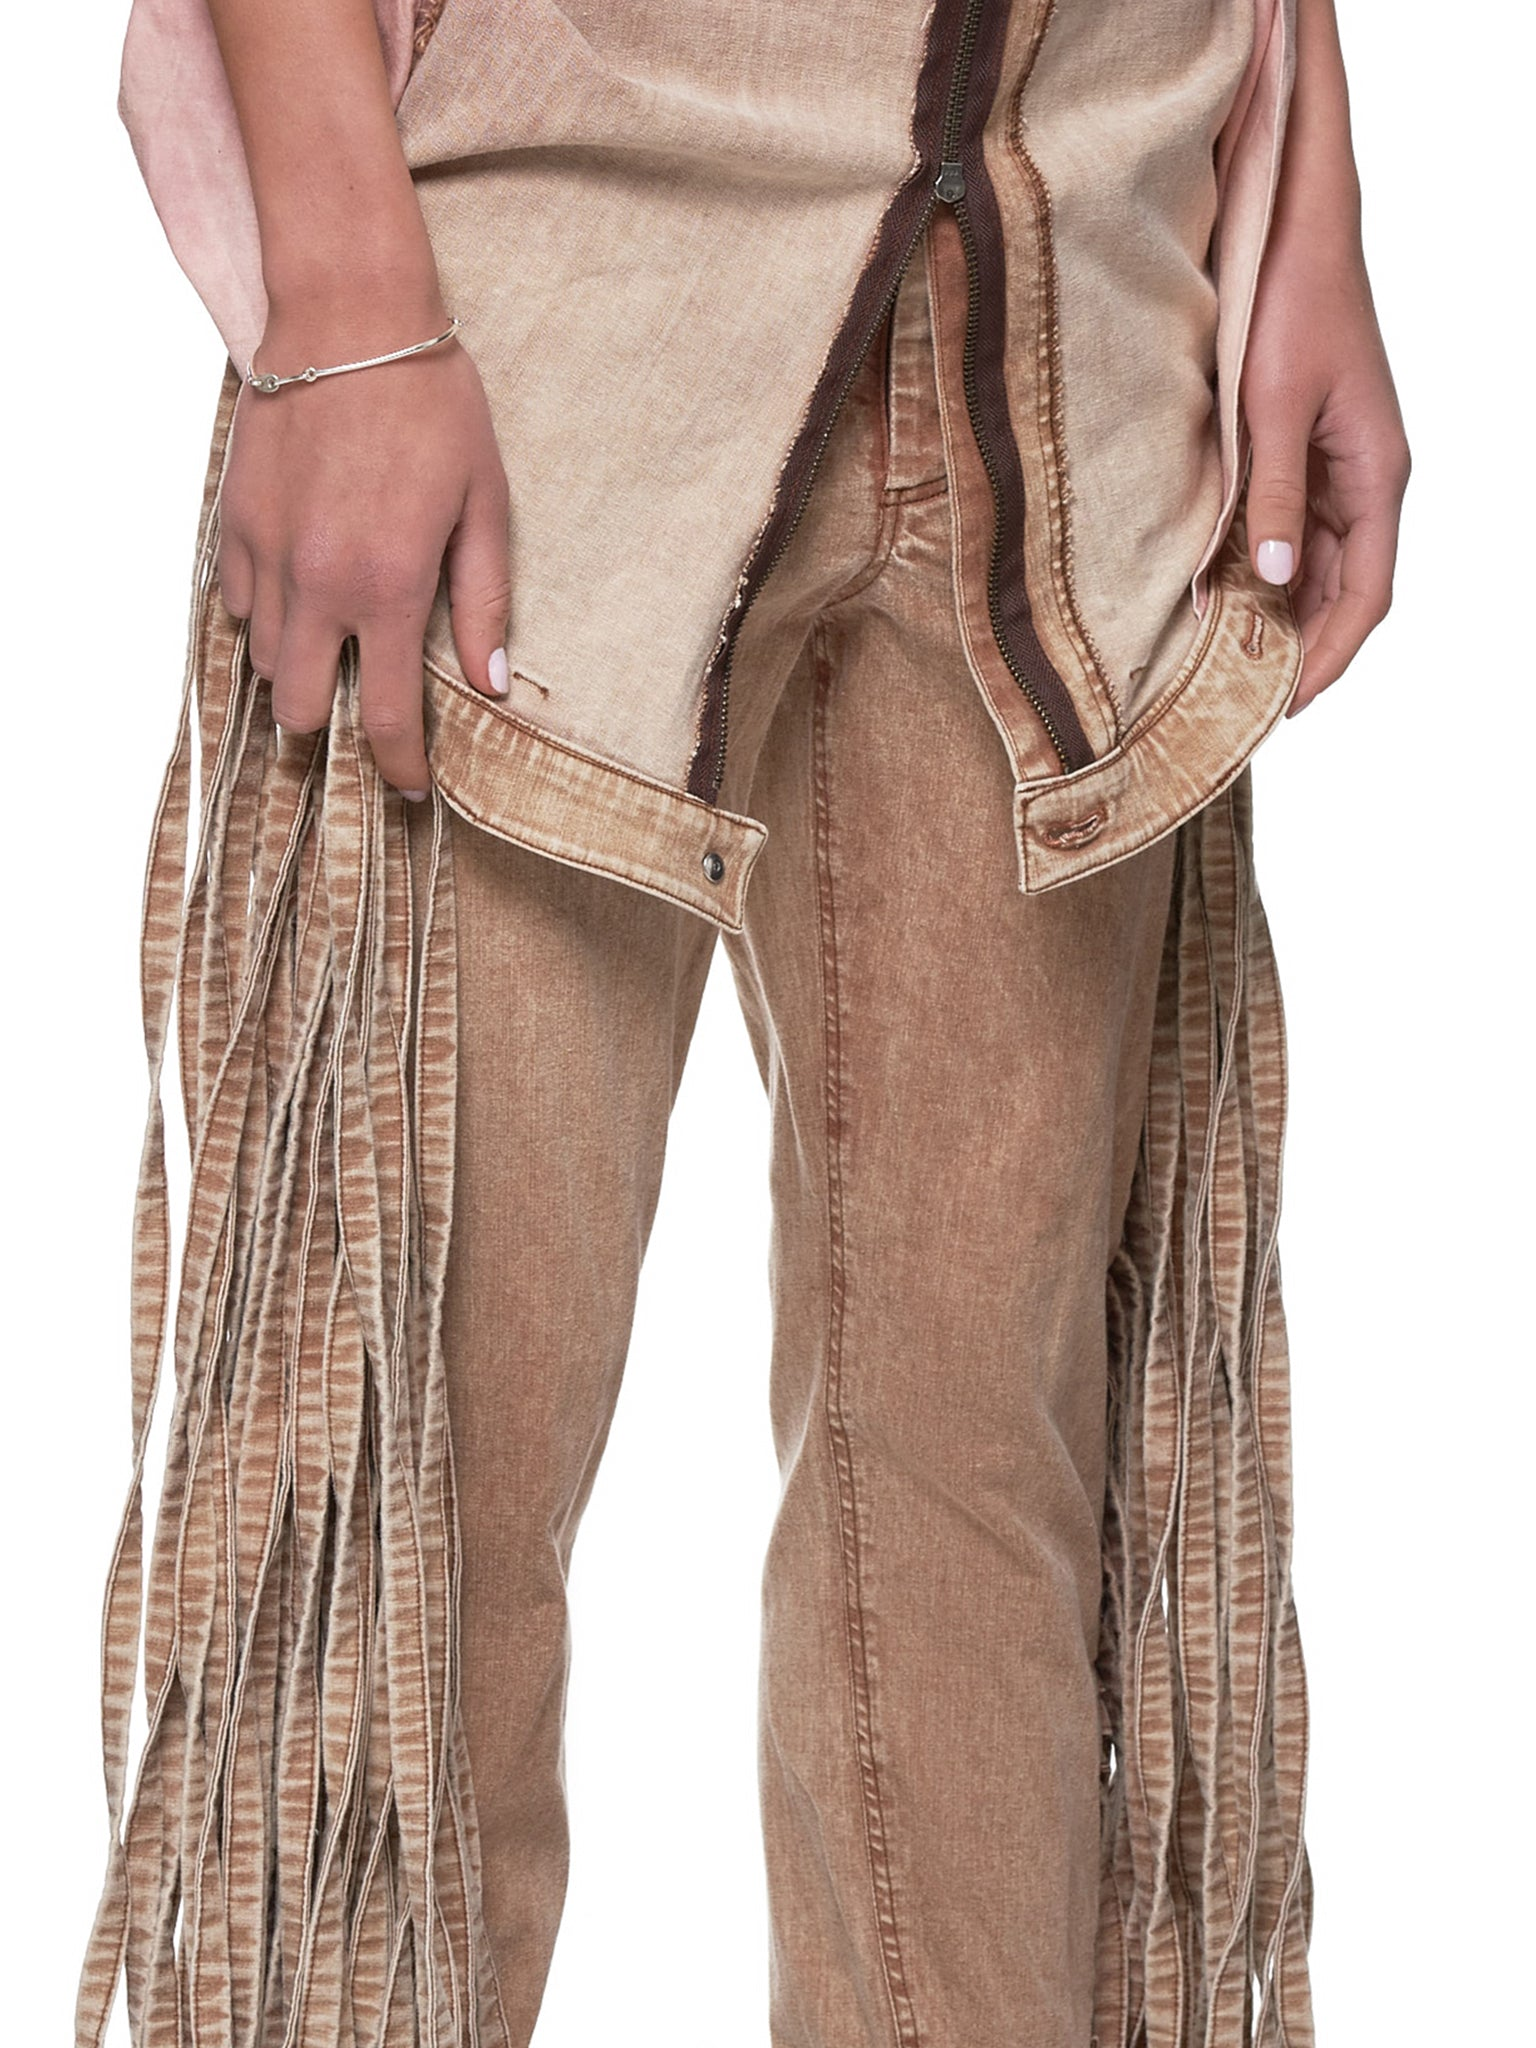 Fringe Jeans (JFSS19P01-BROWN)